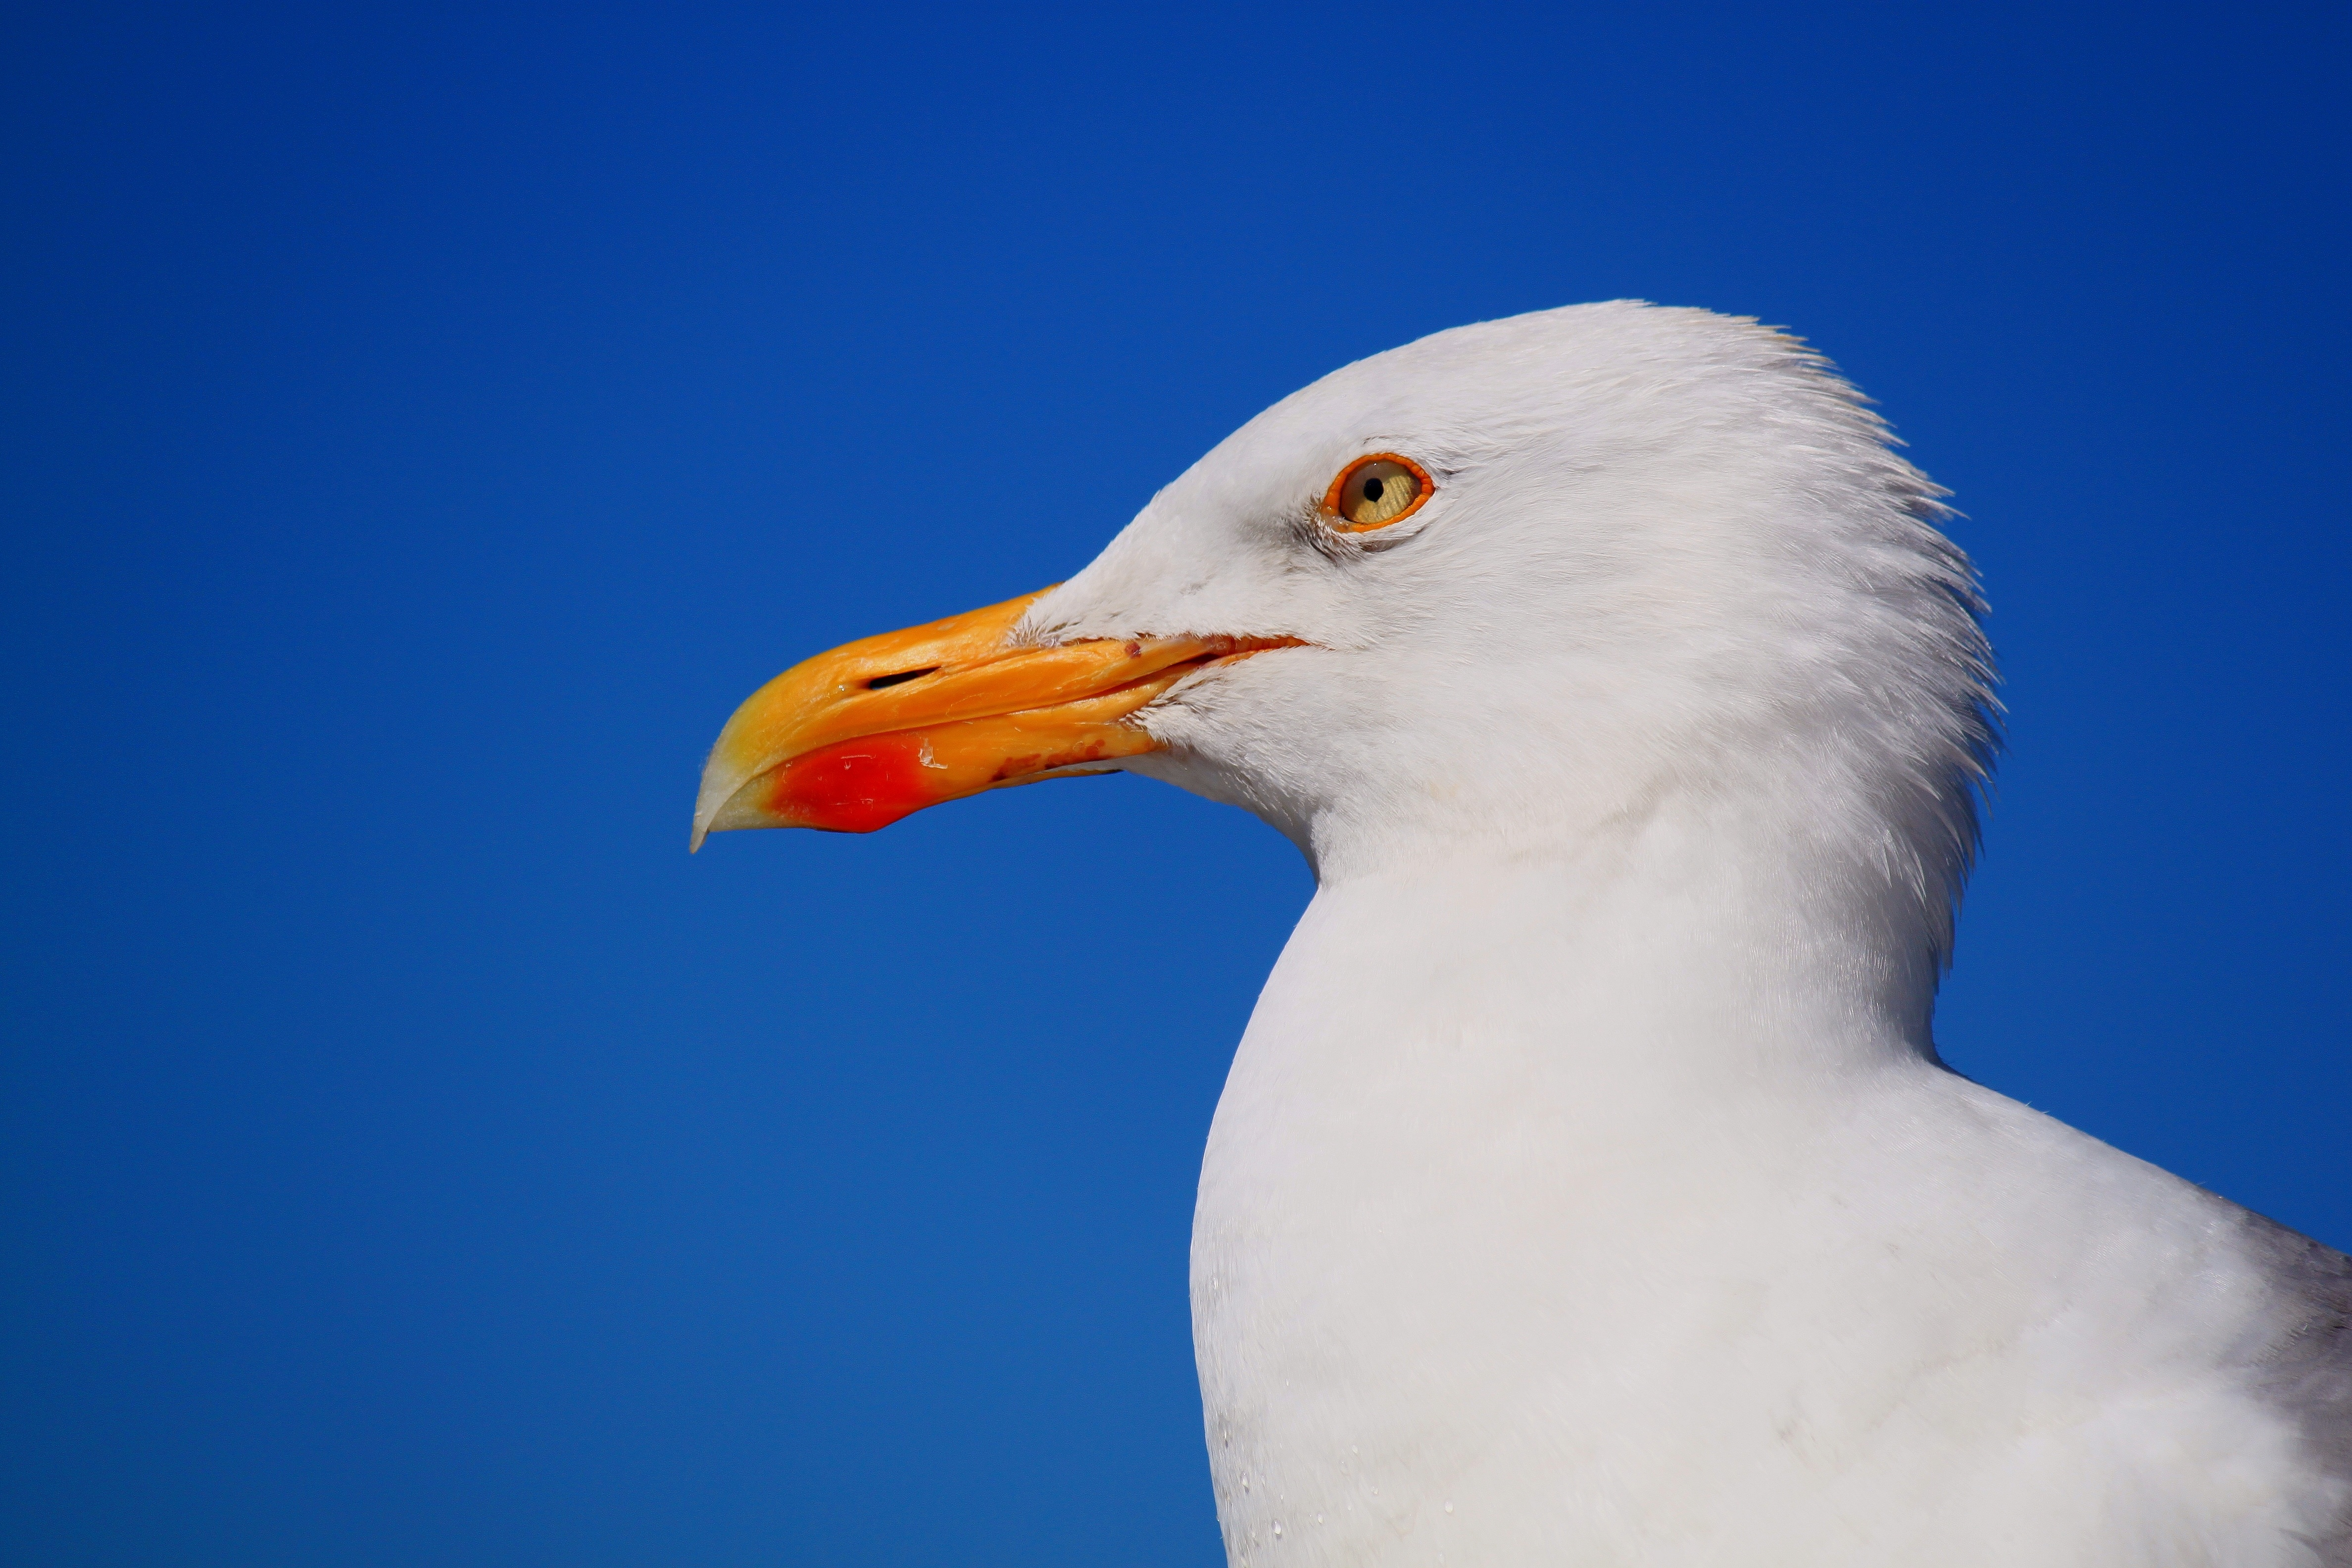 Iphone X Wallpaper Black And Blue Free Stock Photo Of Animal Bird Seagull